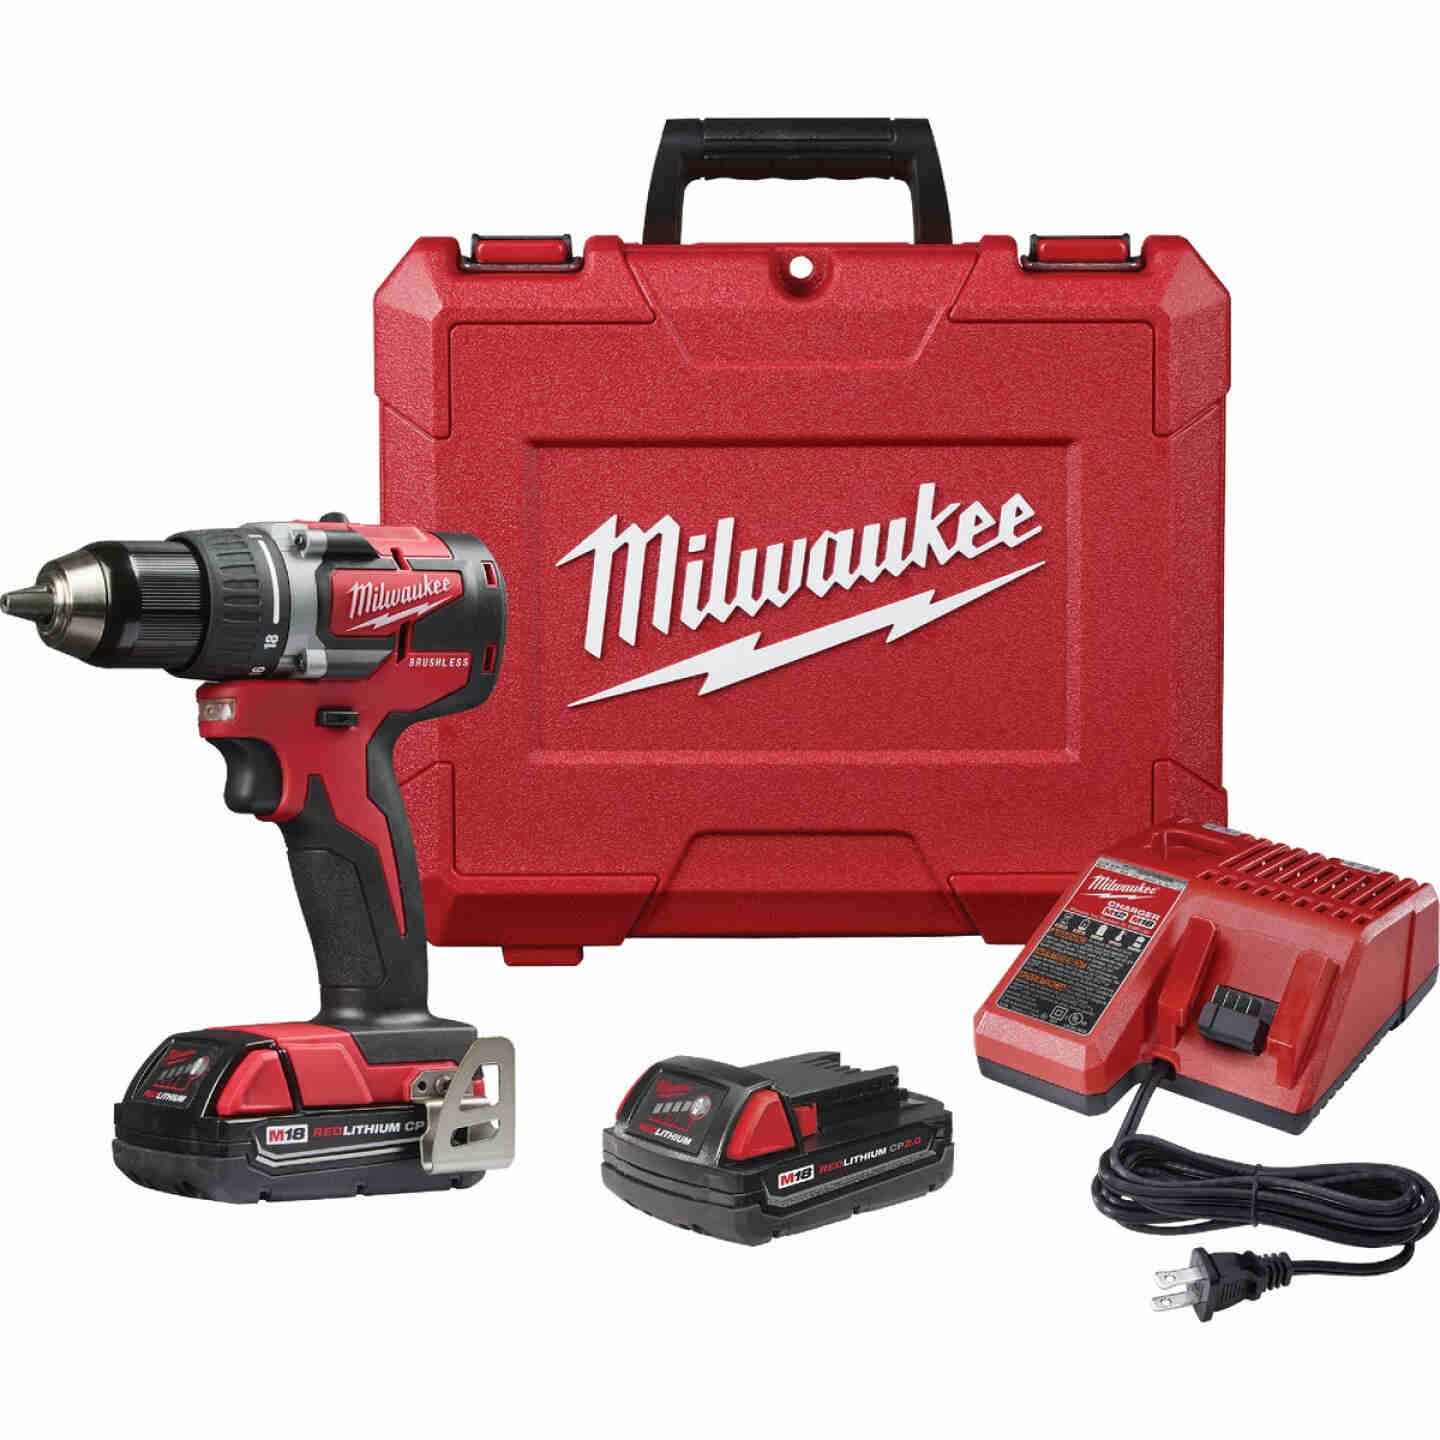 Milwaukee M18 Compact Brushless 1/2 In. Drill Driver Kit Image 1